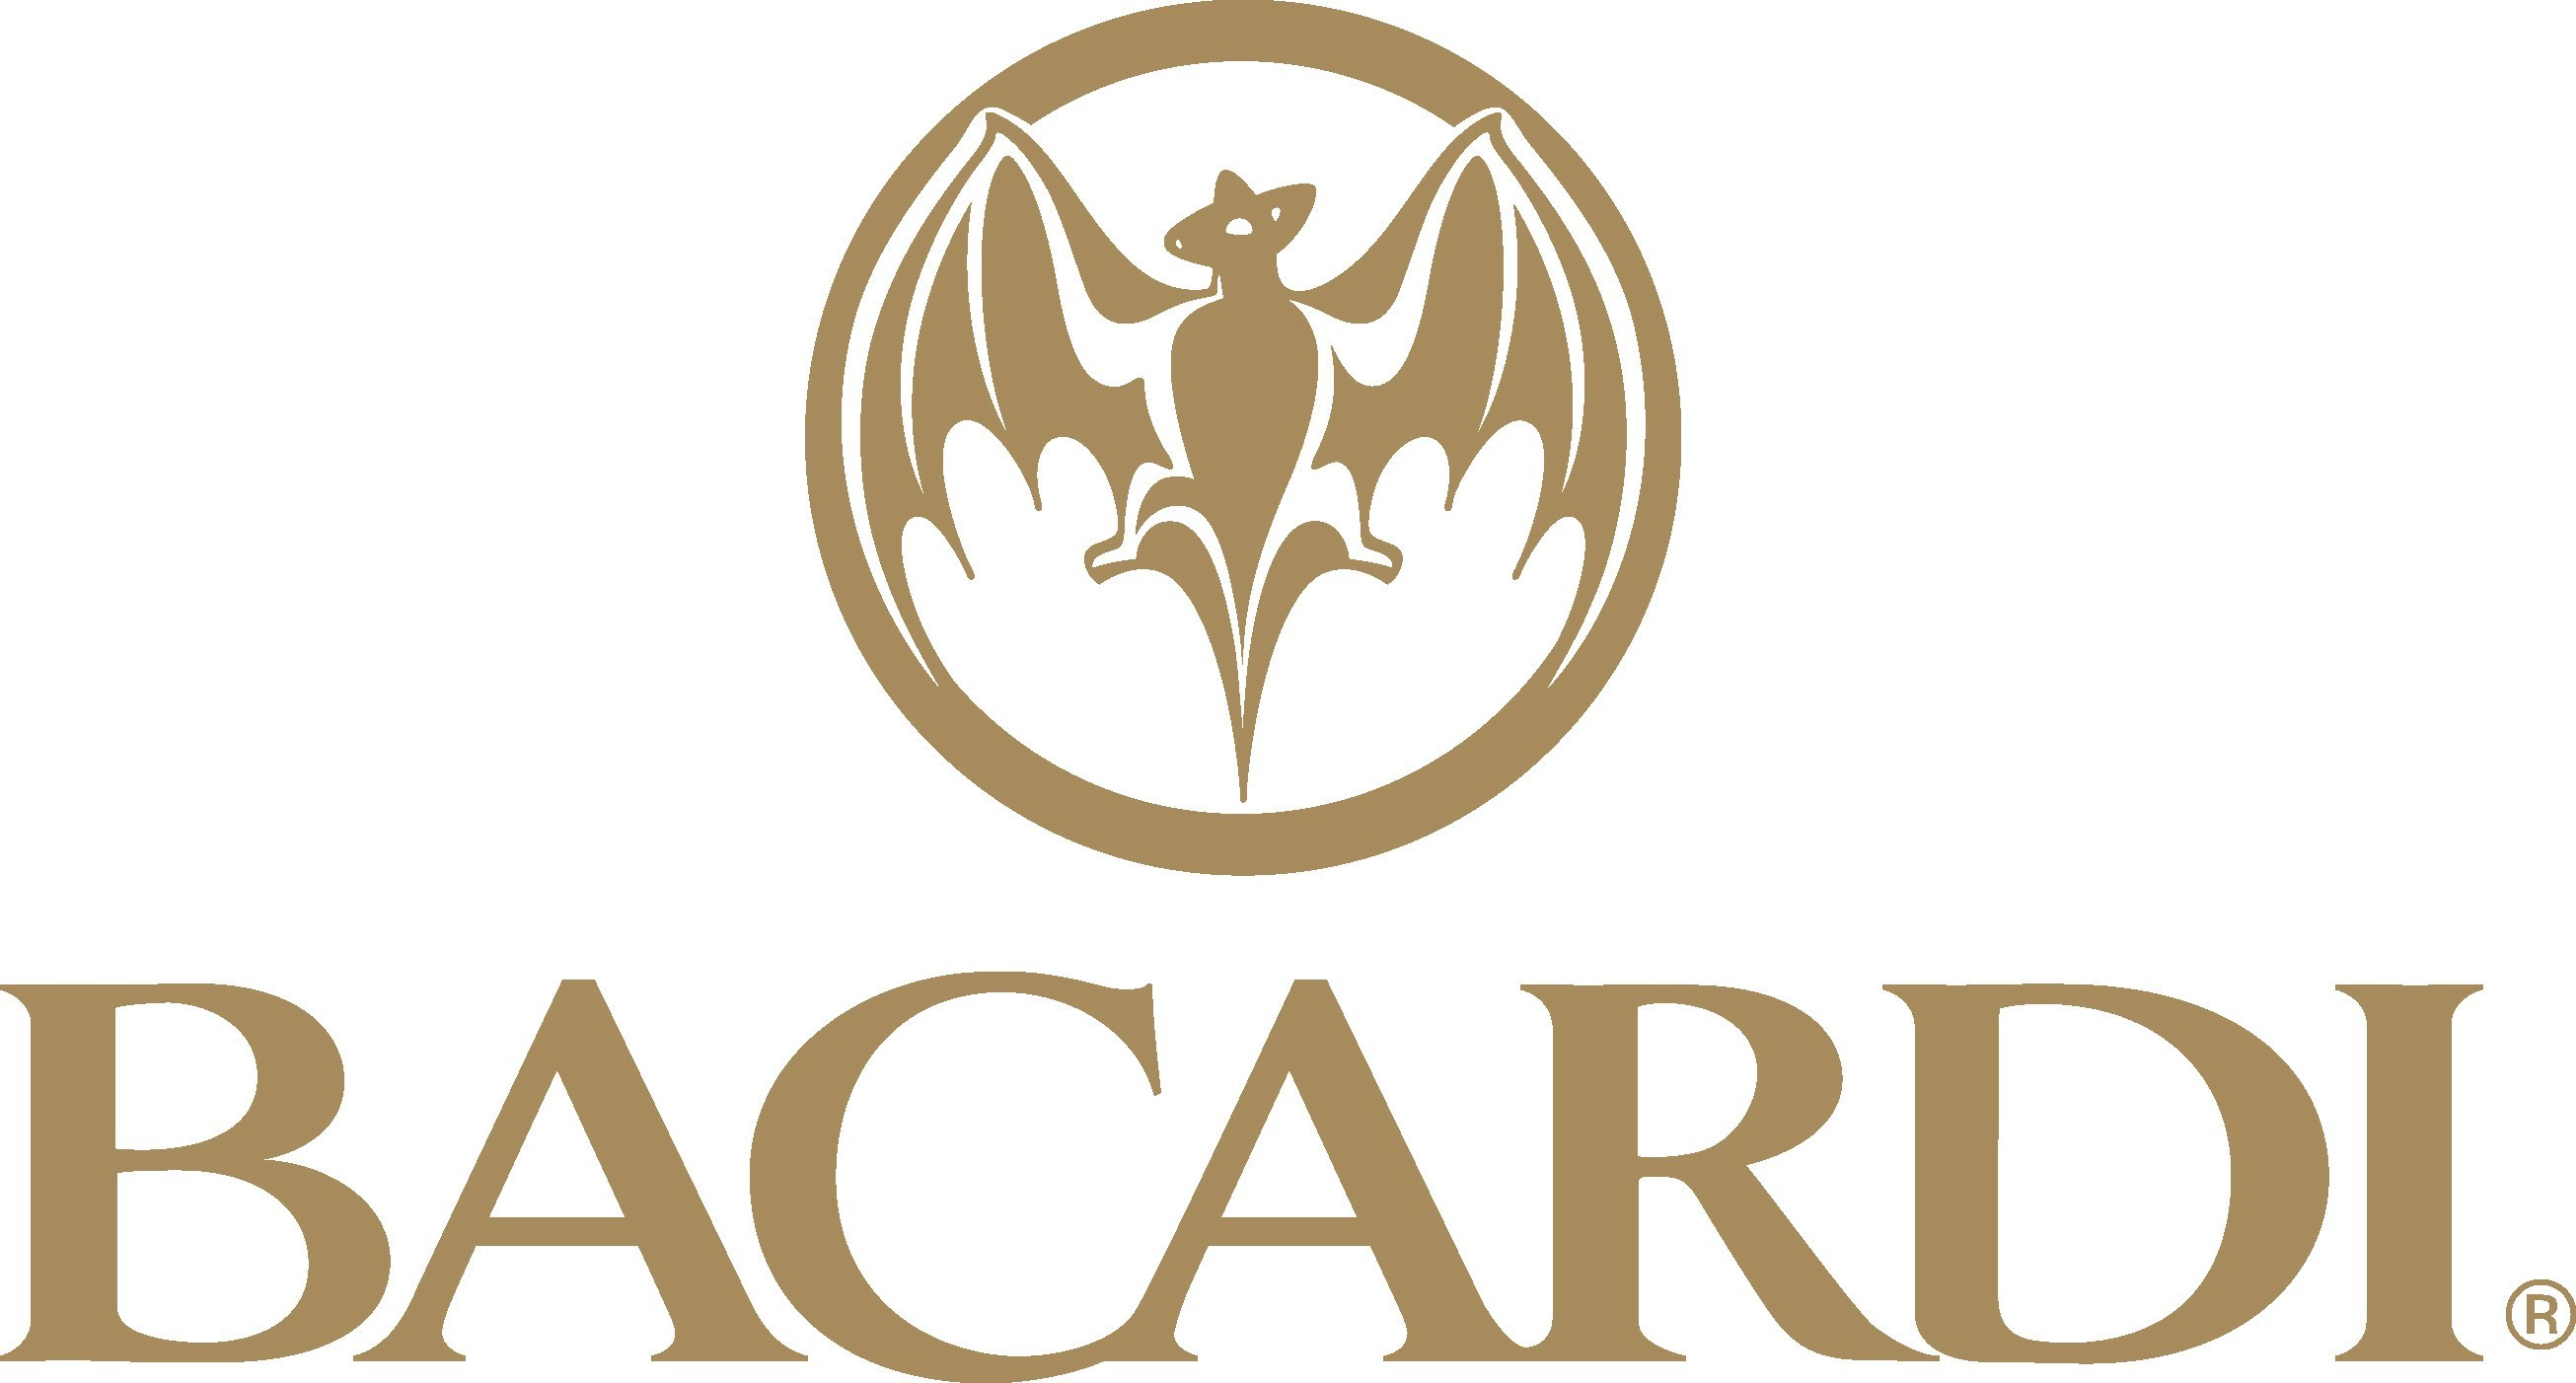 bacardi limited continues to deliver upon corporate social